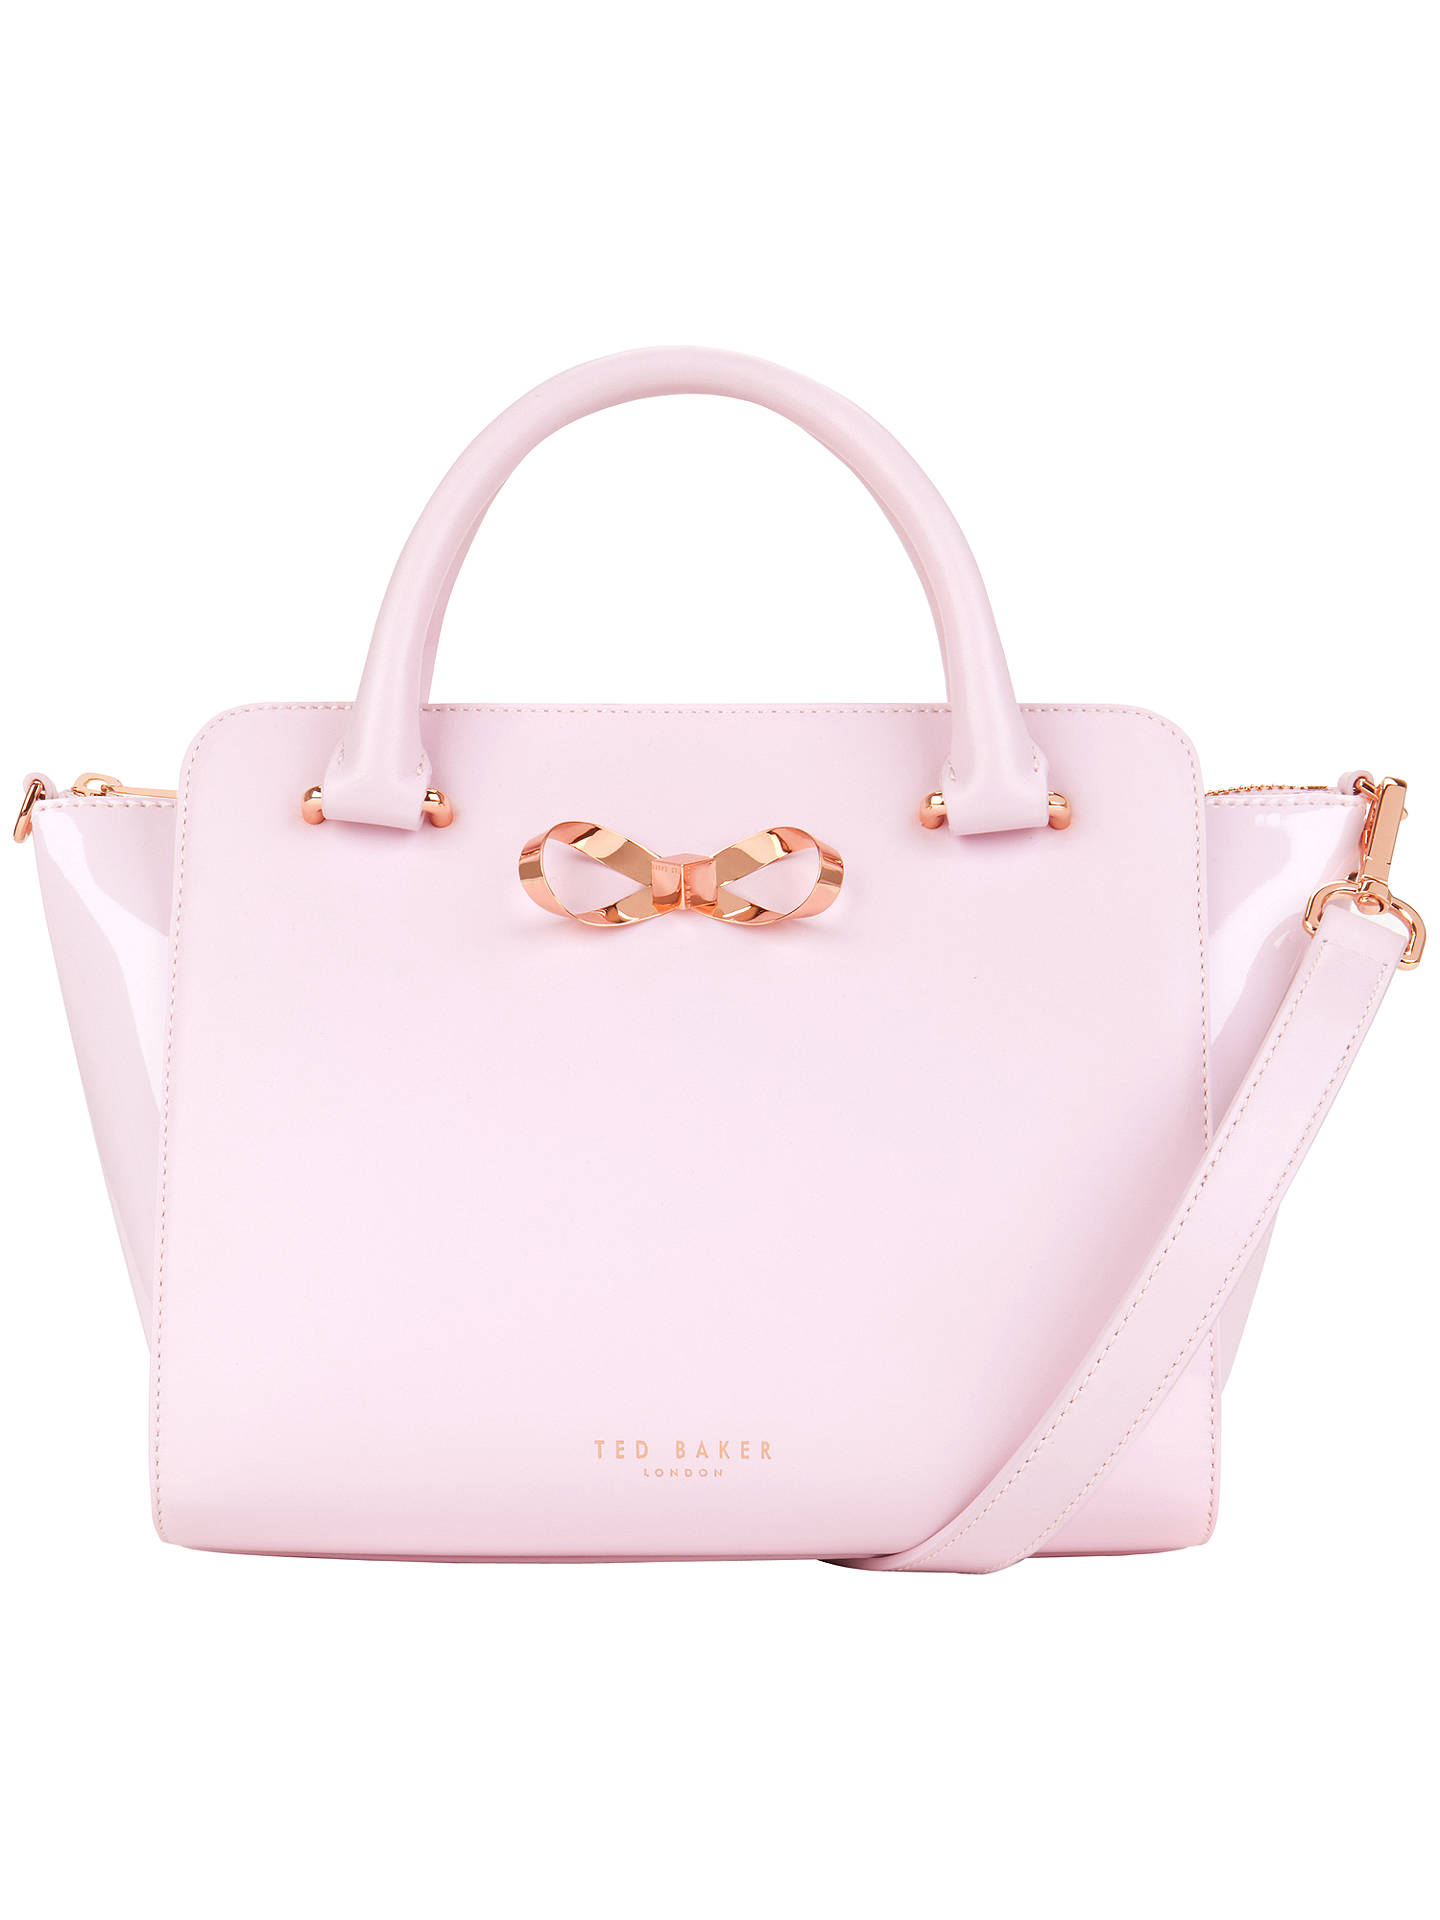 dd7a962aa60c19 Ted Baker Paiton Bow Leather Tote Bag at John Lewis   Partners